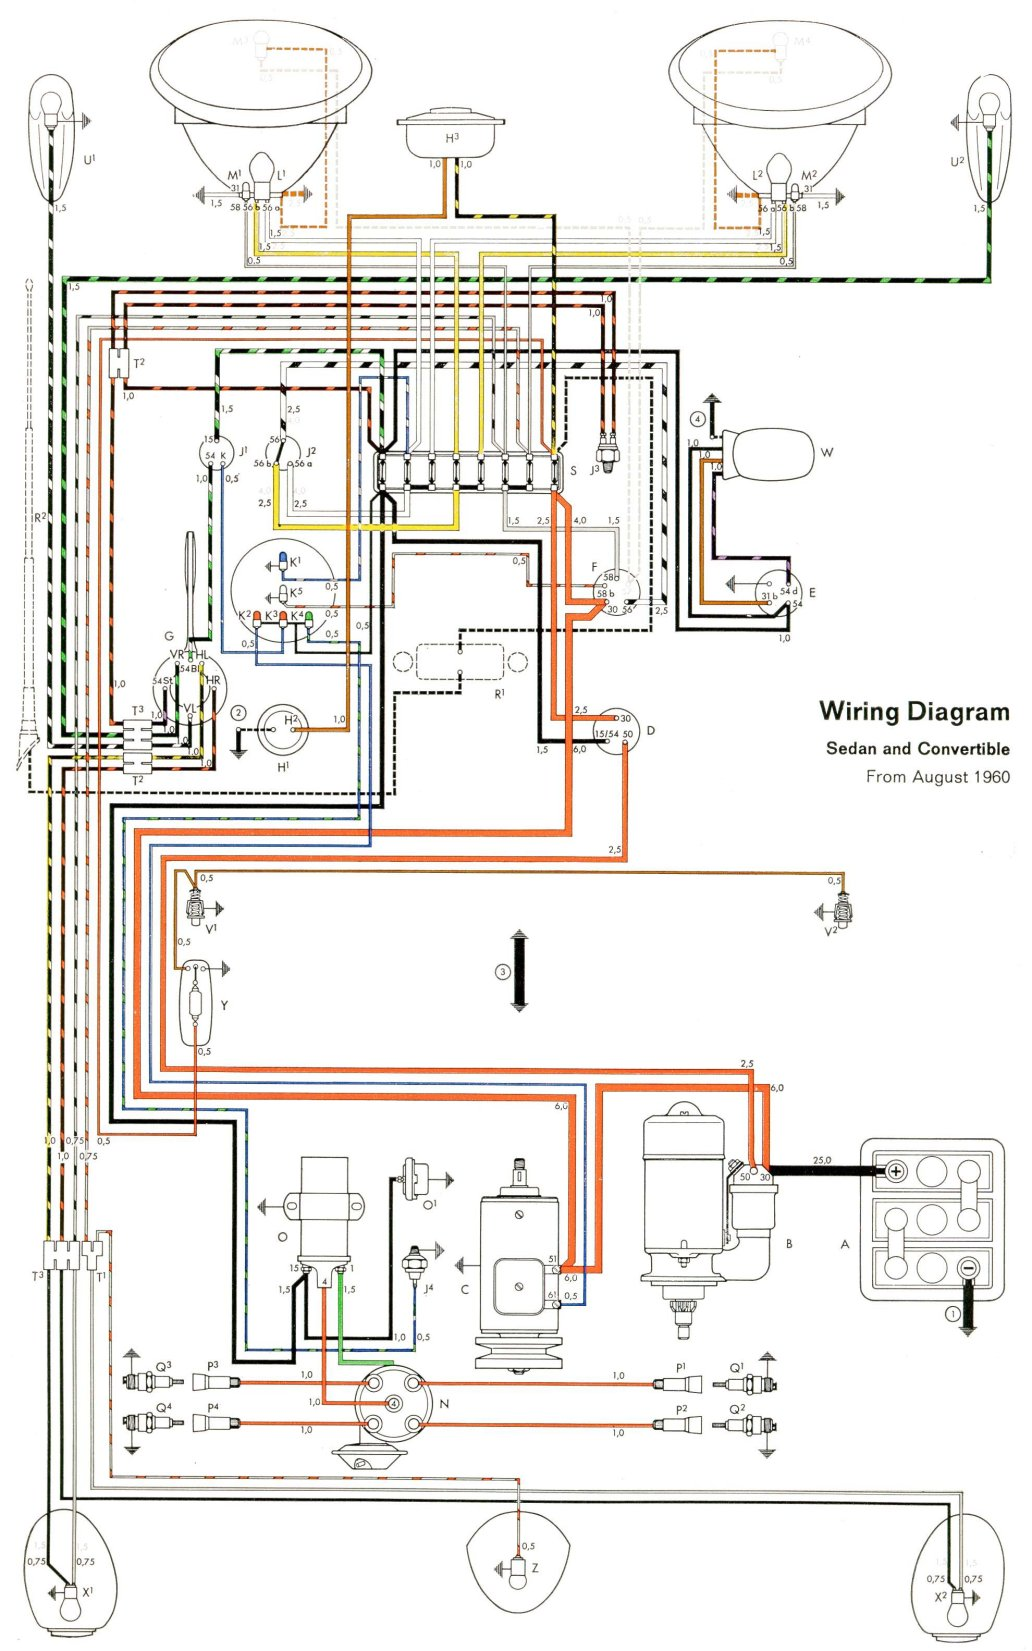 bug_61 thesamba com type 1 wiring diagrams vw wiring diagram at gsmportal.co